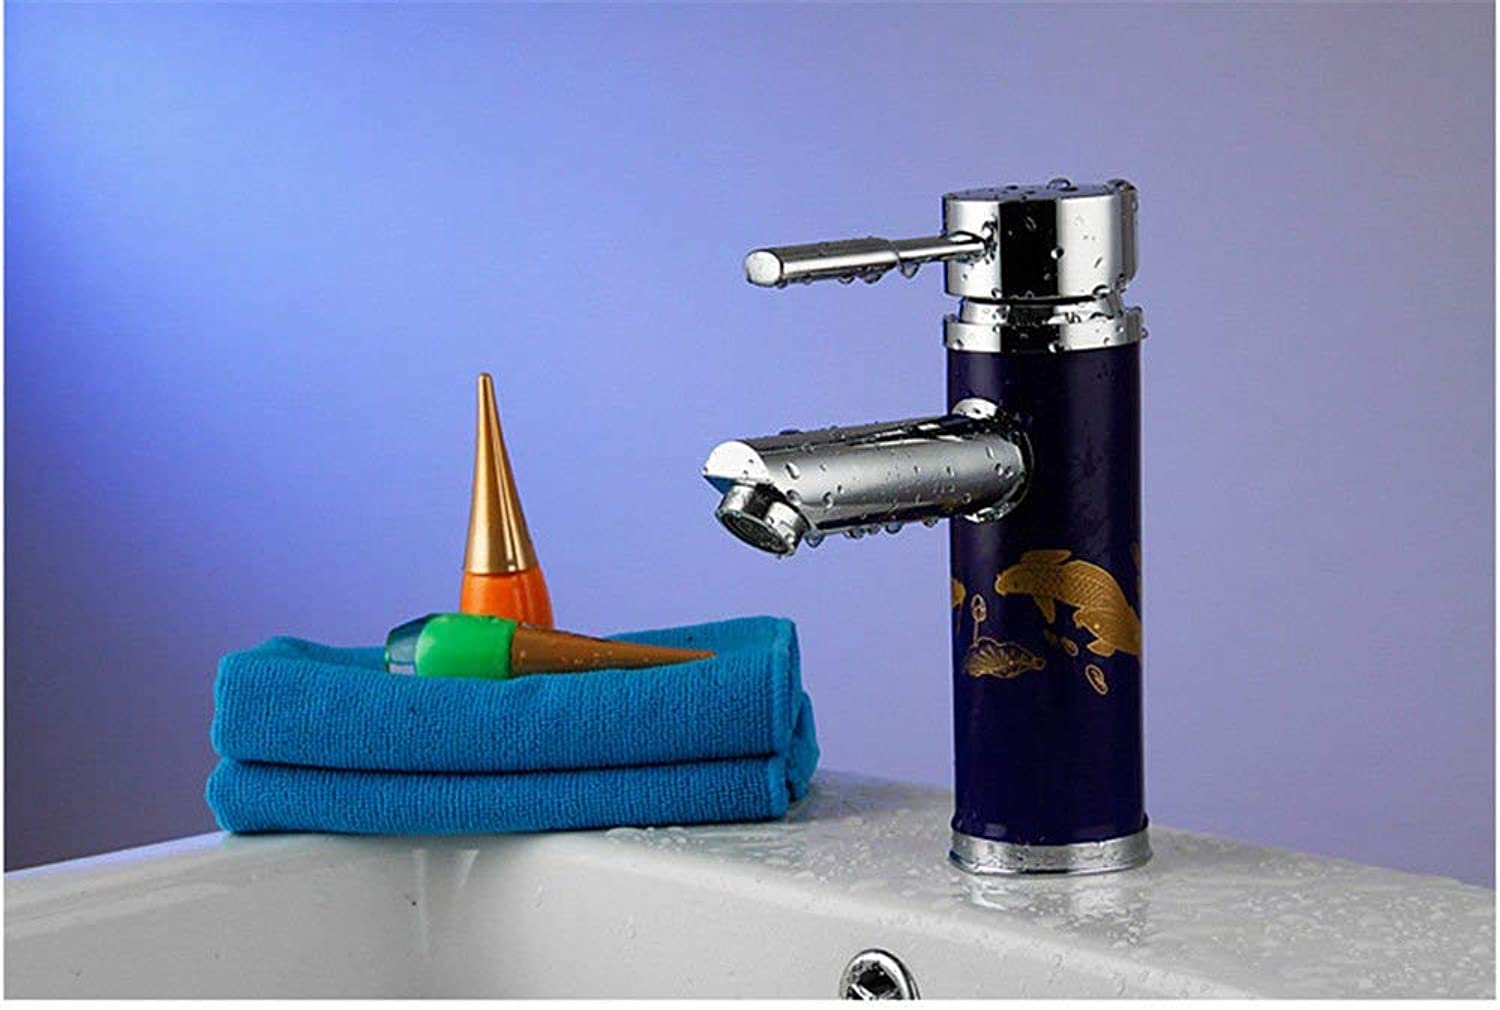 Oudan Bathroom Sink Basin Tap Brass Mixer Tap Washroom Mixer Faucet The colord ceramic single hole bathroom faucet is a water faucet Kitchen Sink Taps